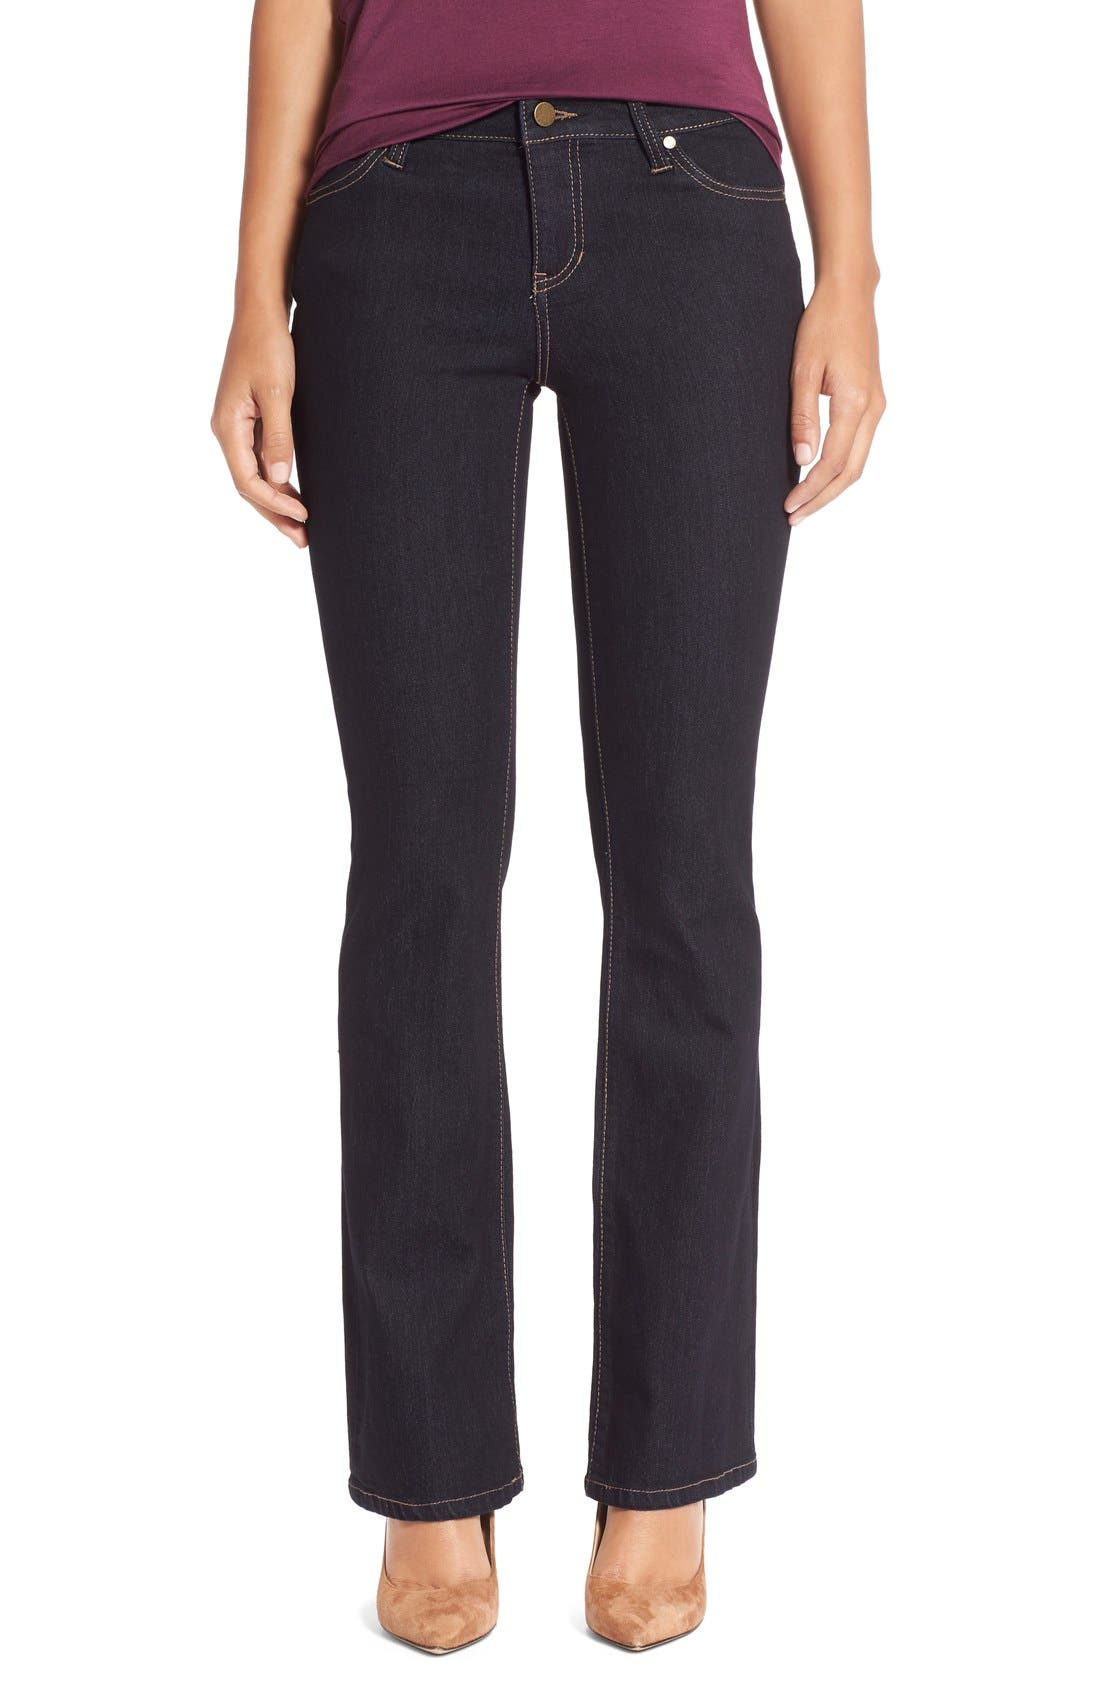 Main Image - LiverpoolJeans Company 'Lucy' Stretch BootcutJeans (Indigo) (Petite)